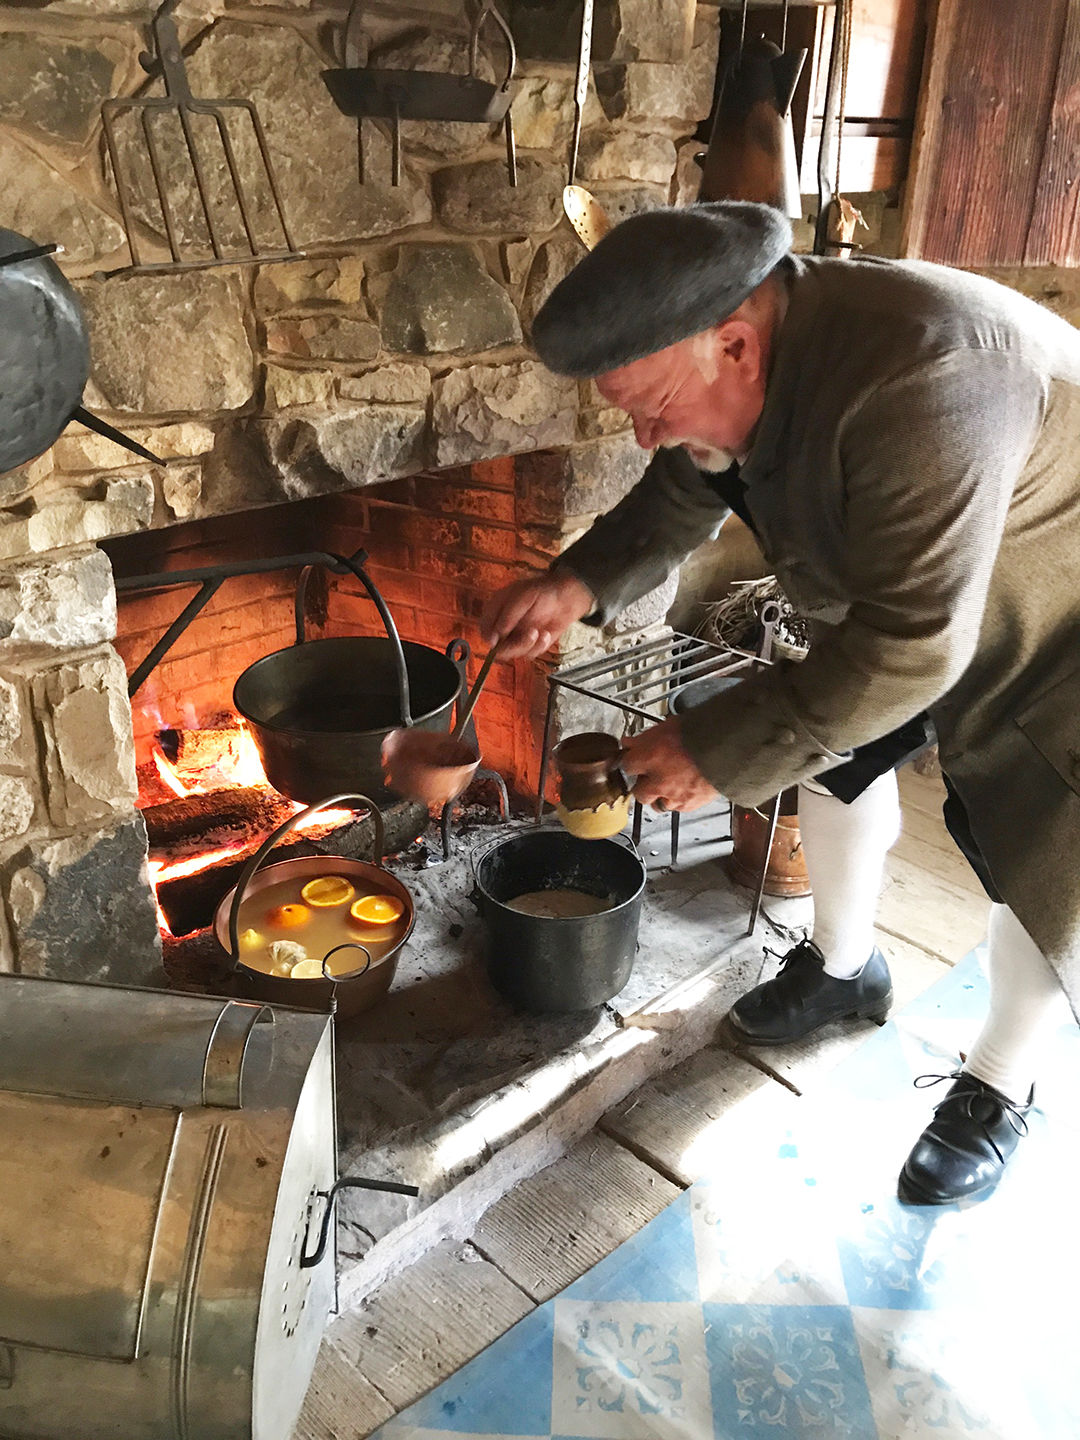 Sycamore Shoals State Historic Park featuring two shows this weekend